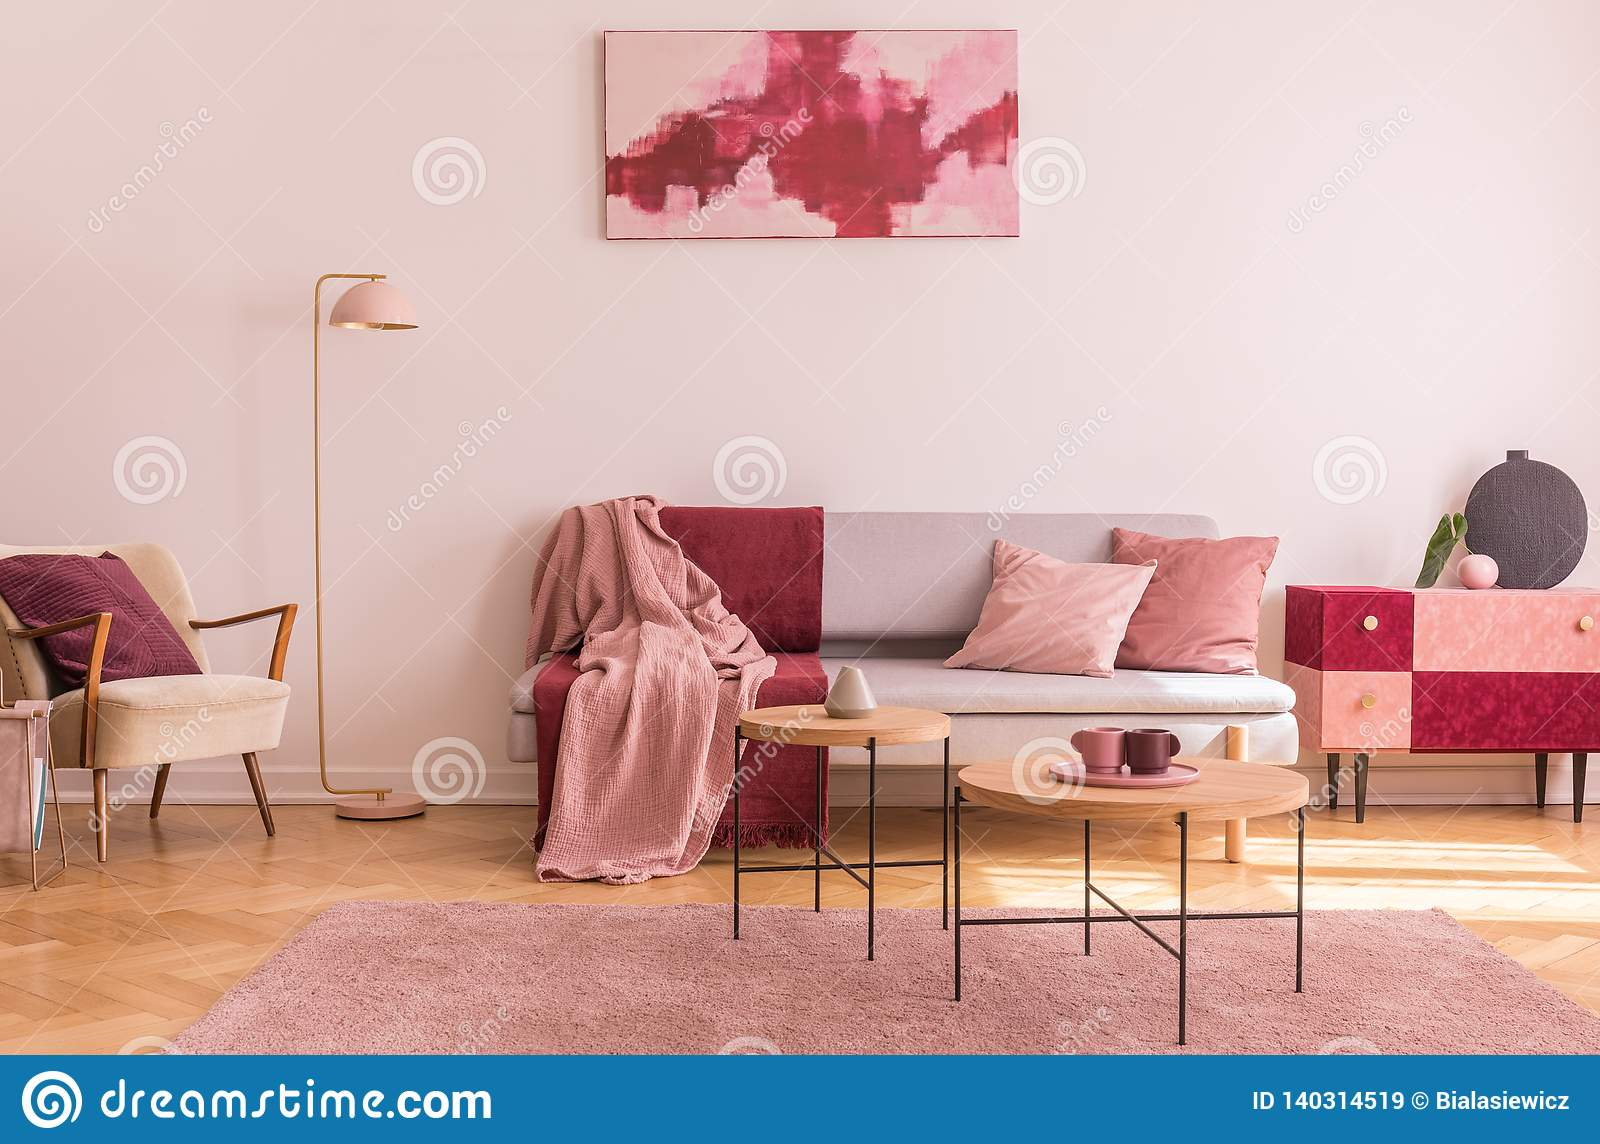 Abstract burgundy and pastel pink painting on empty white wall of fashionable living room interior with classy armchair and